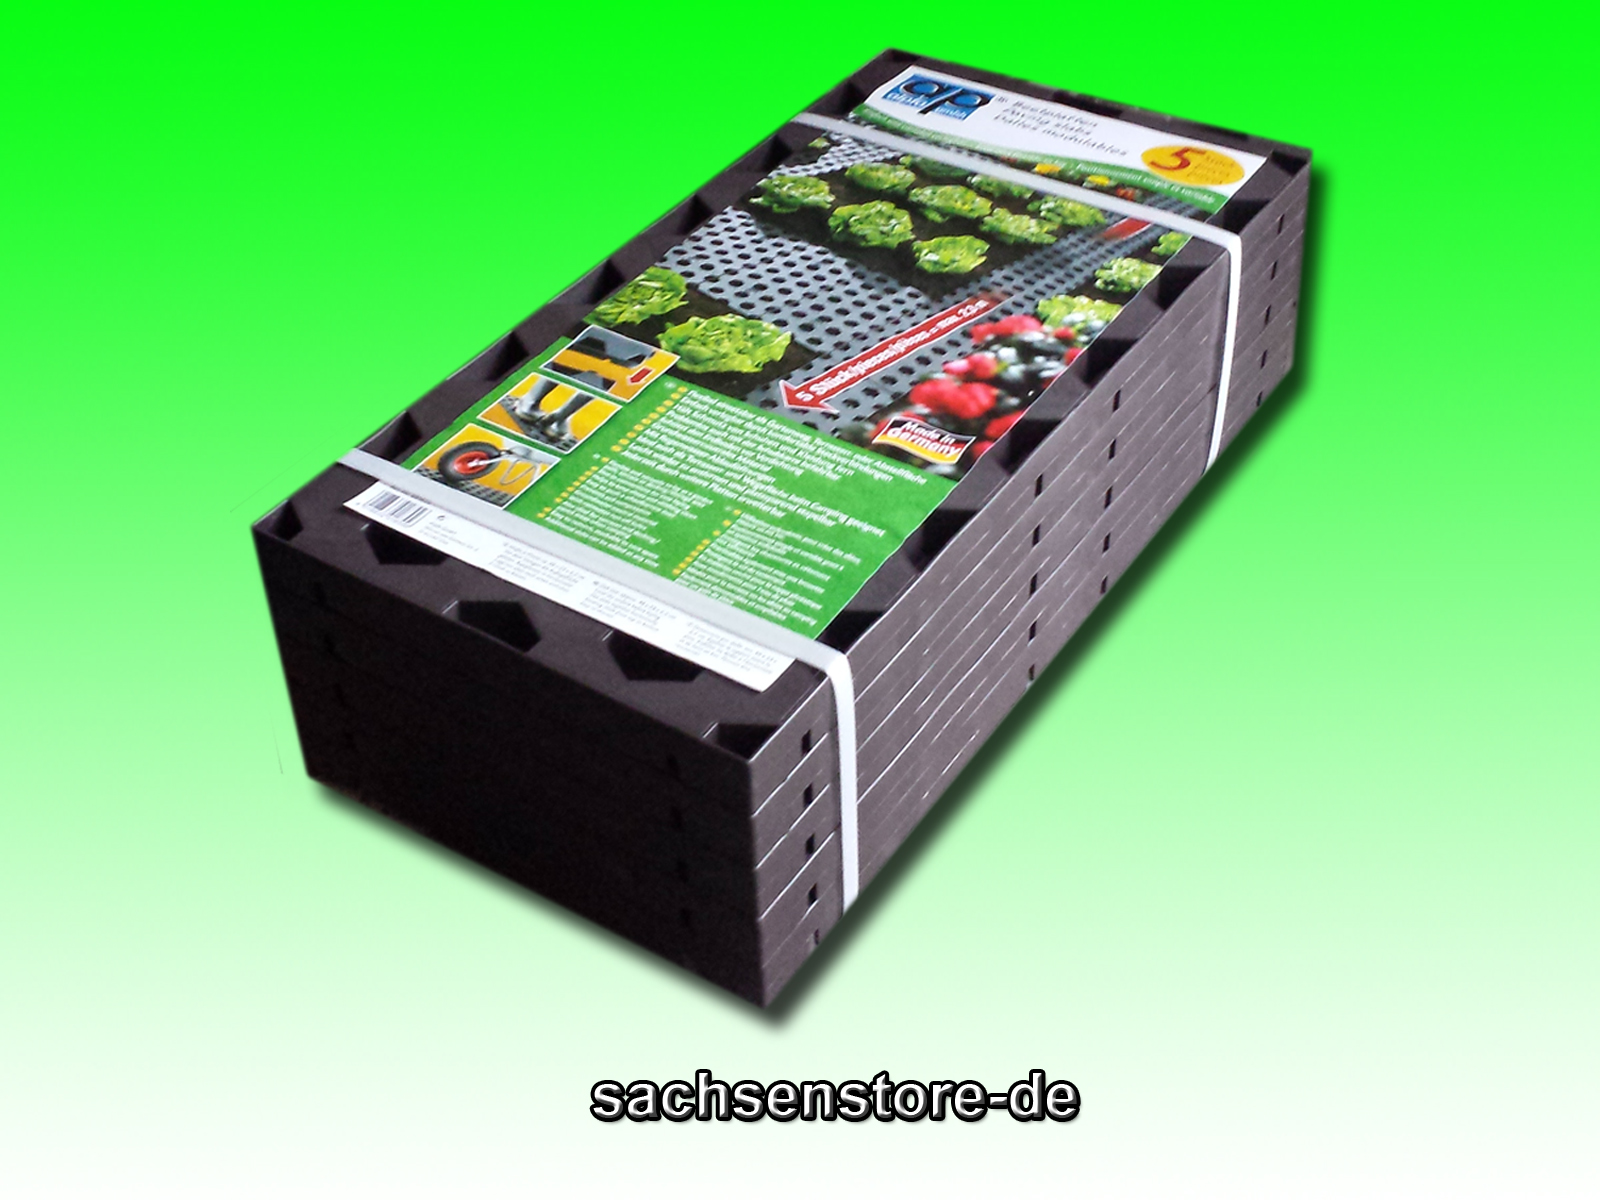 agm batterie shark 95 ah 12v neu grau ebay. Black Bedroom Furniture Sets. Home Design Ideas